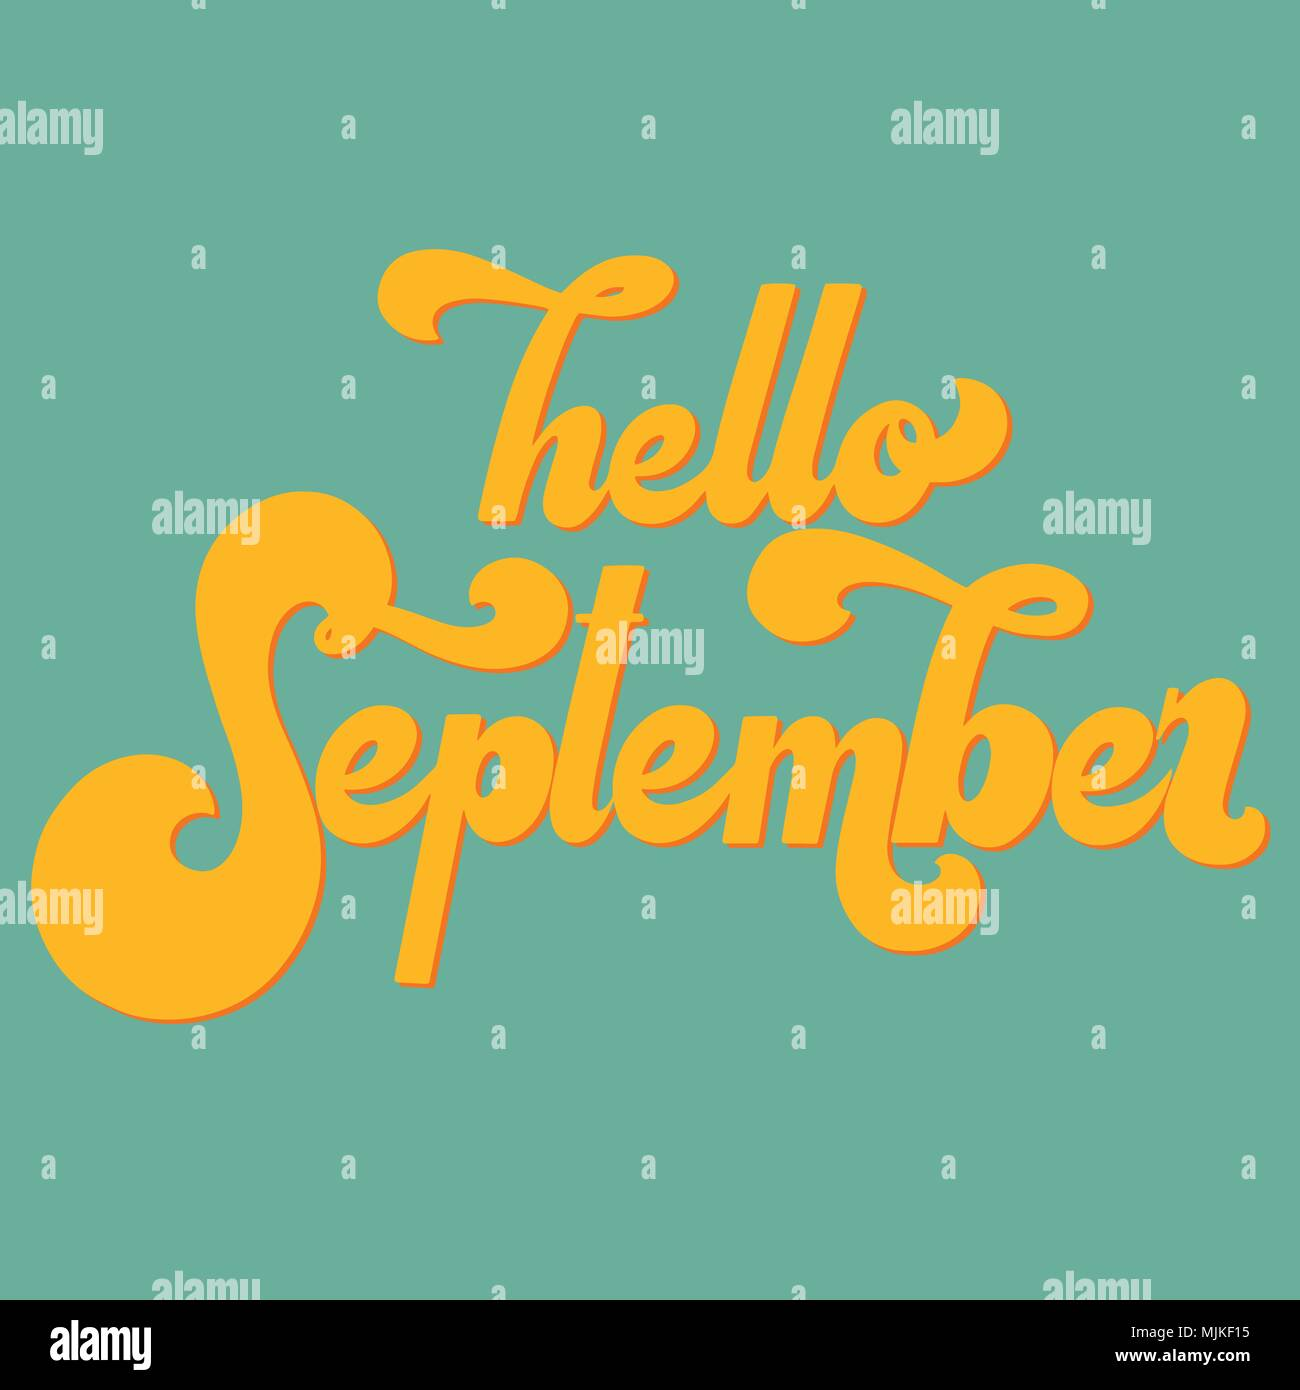 Hello september lettering elements for invitations posters hello september lettering elements for invitations posters greeting cards t shirt design seasons greetings 70s typography retro style m4hsunfo